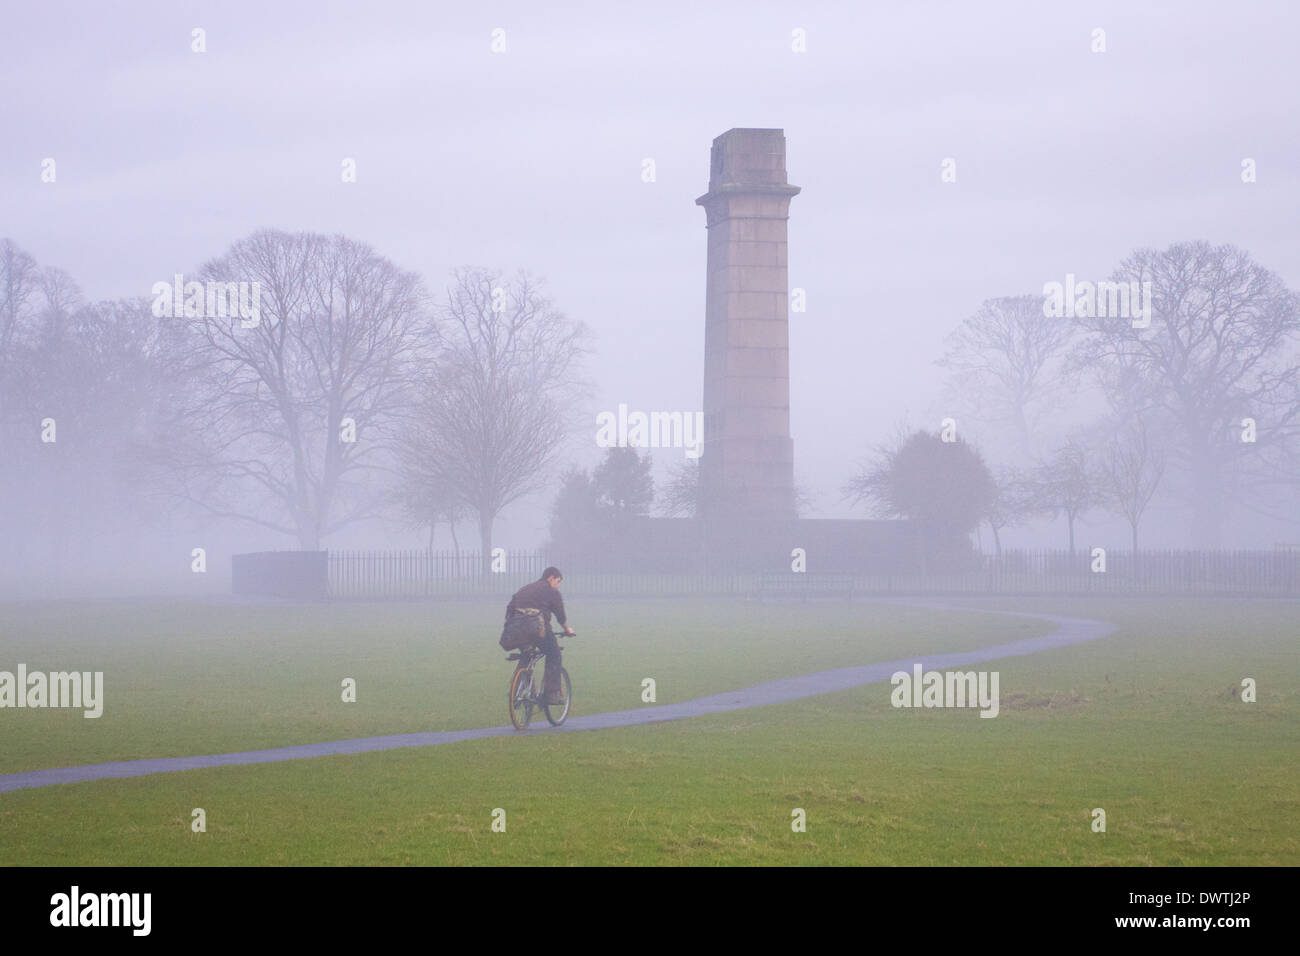 Man cycling on a path towards Cenotaph World War One memorial in the fog. Rickerby Park Carlisle, Cumbria, England. - Stock Image